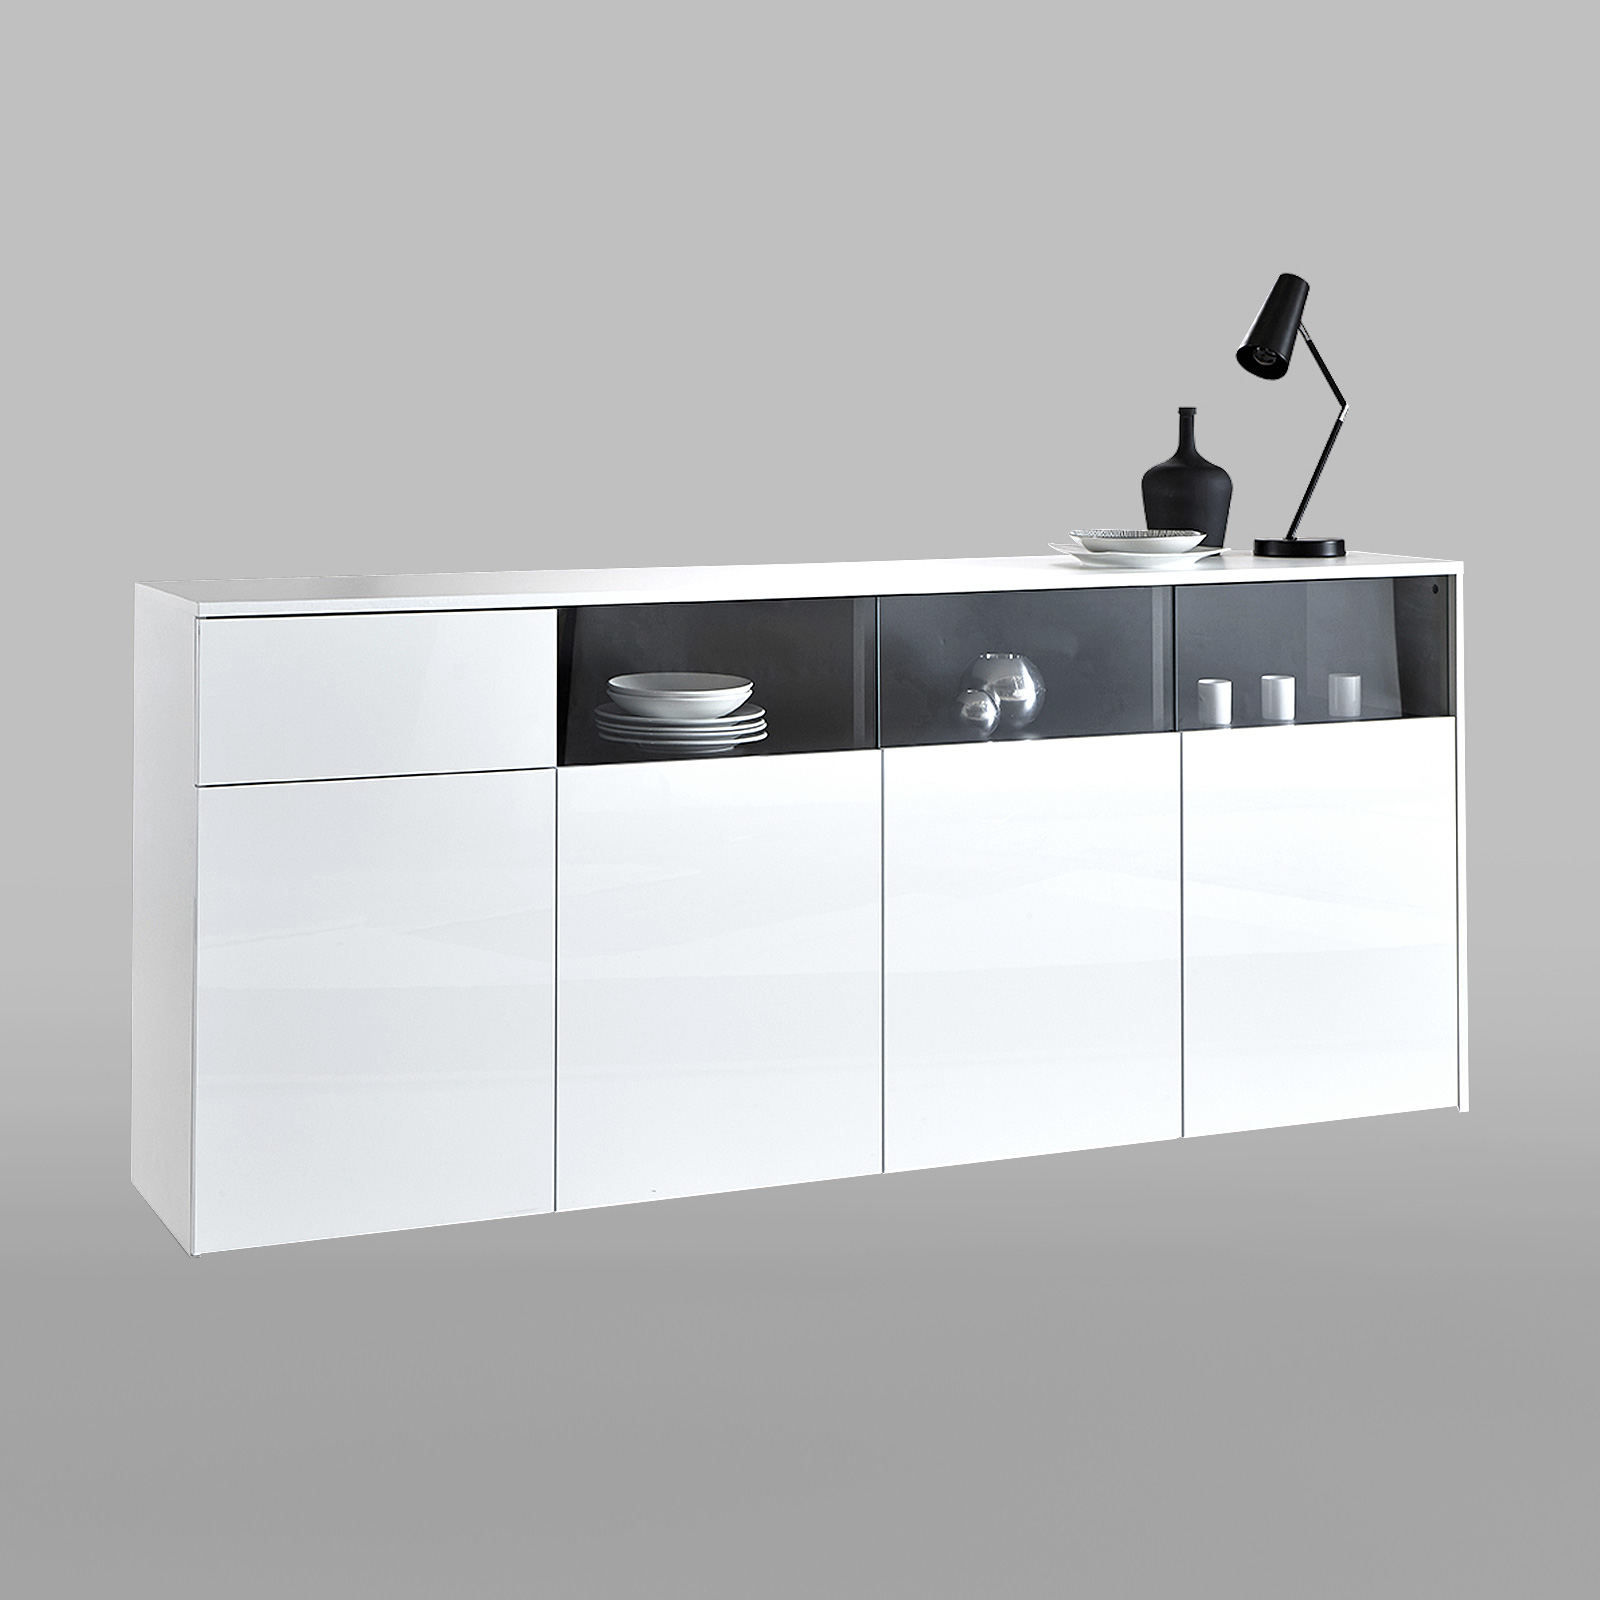 sideboard malia kommode anrichte schrank f r wohnzimmer esszimmer gl nzend wei. Black Bedroom Furniture Sets. Home Design Ideas